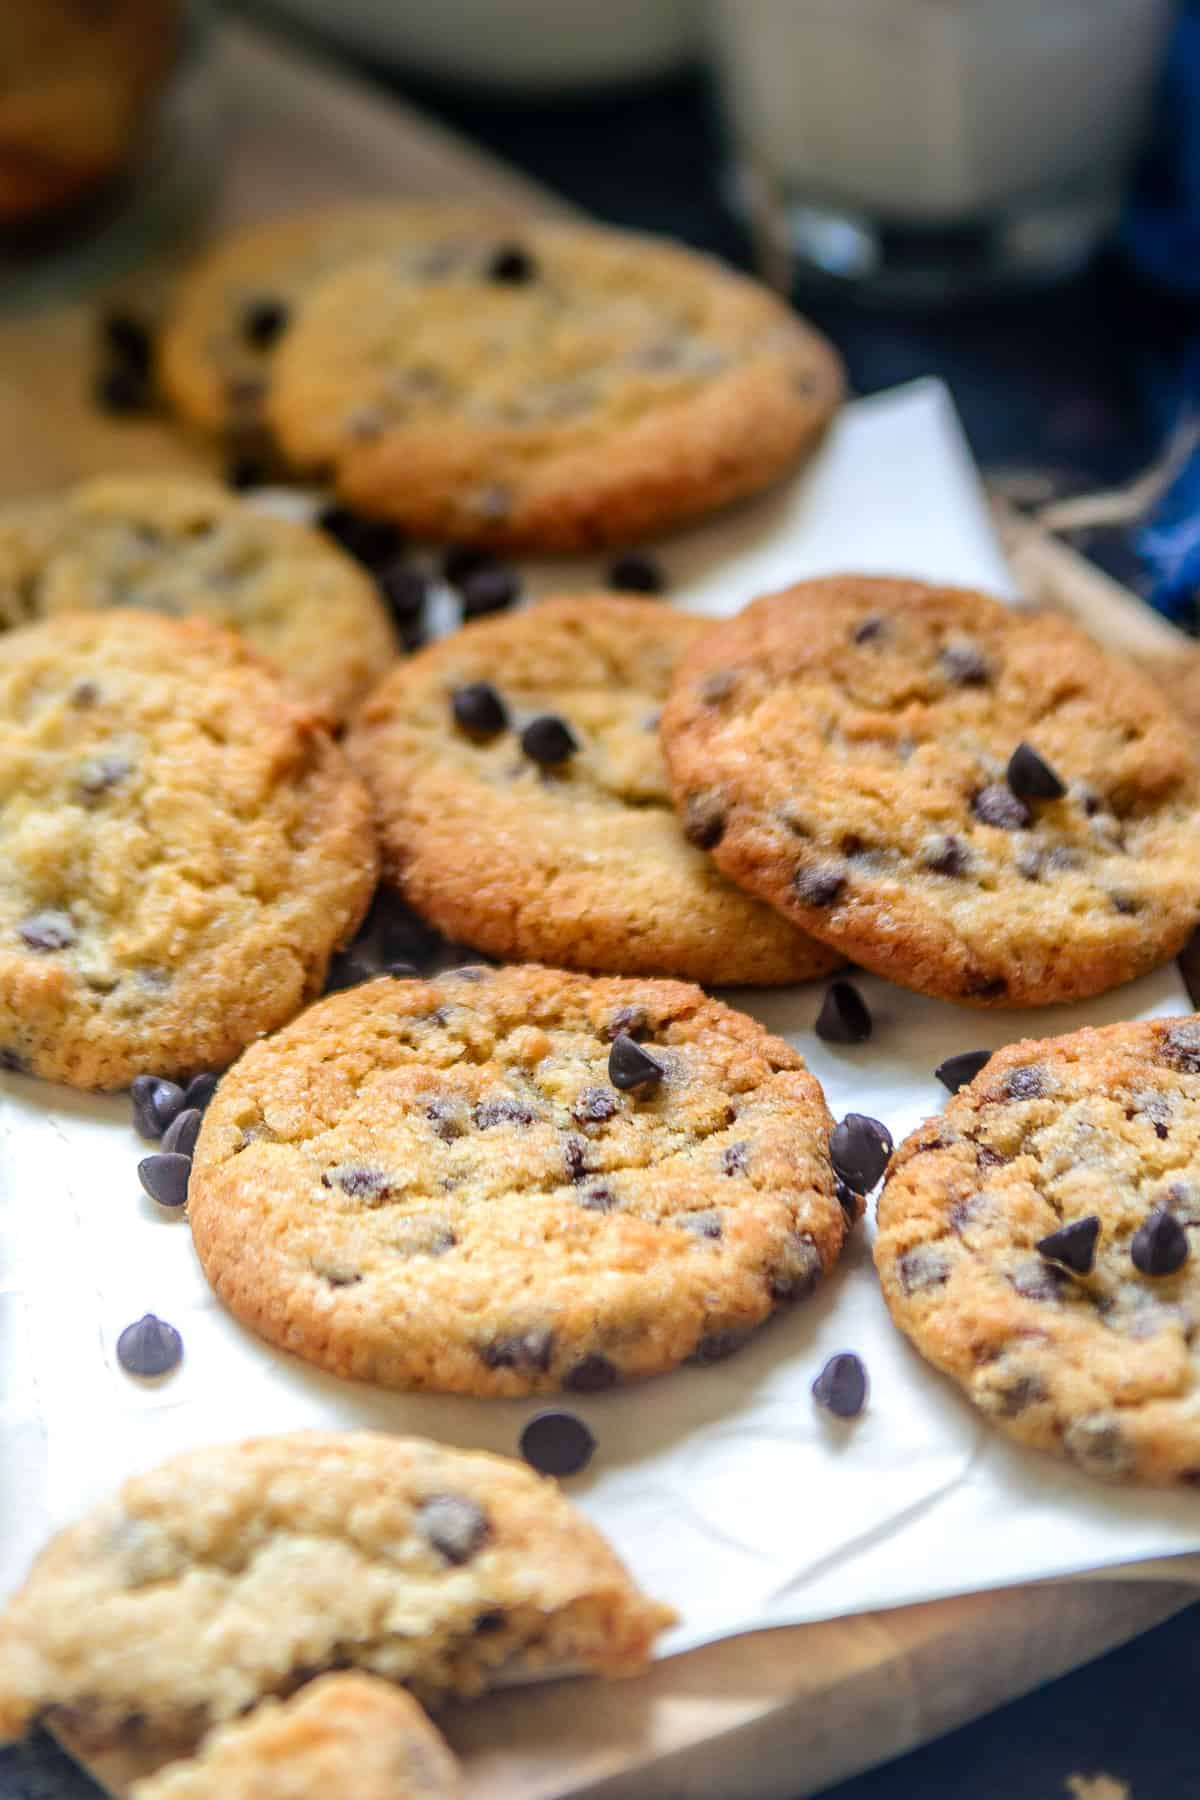 Chocolate Chip Cookies lying on the table.